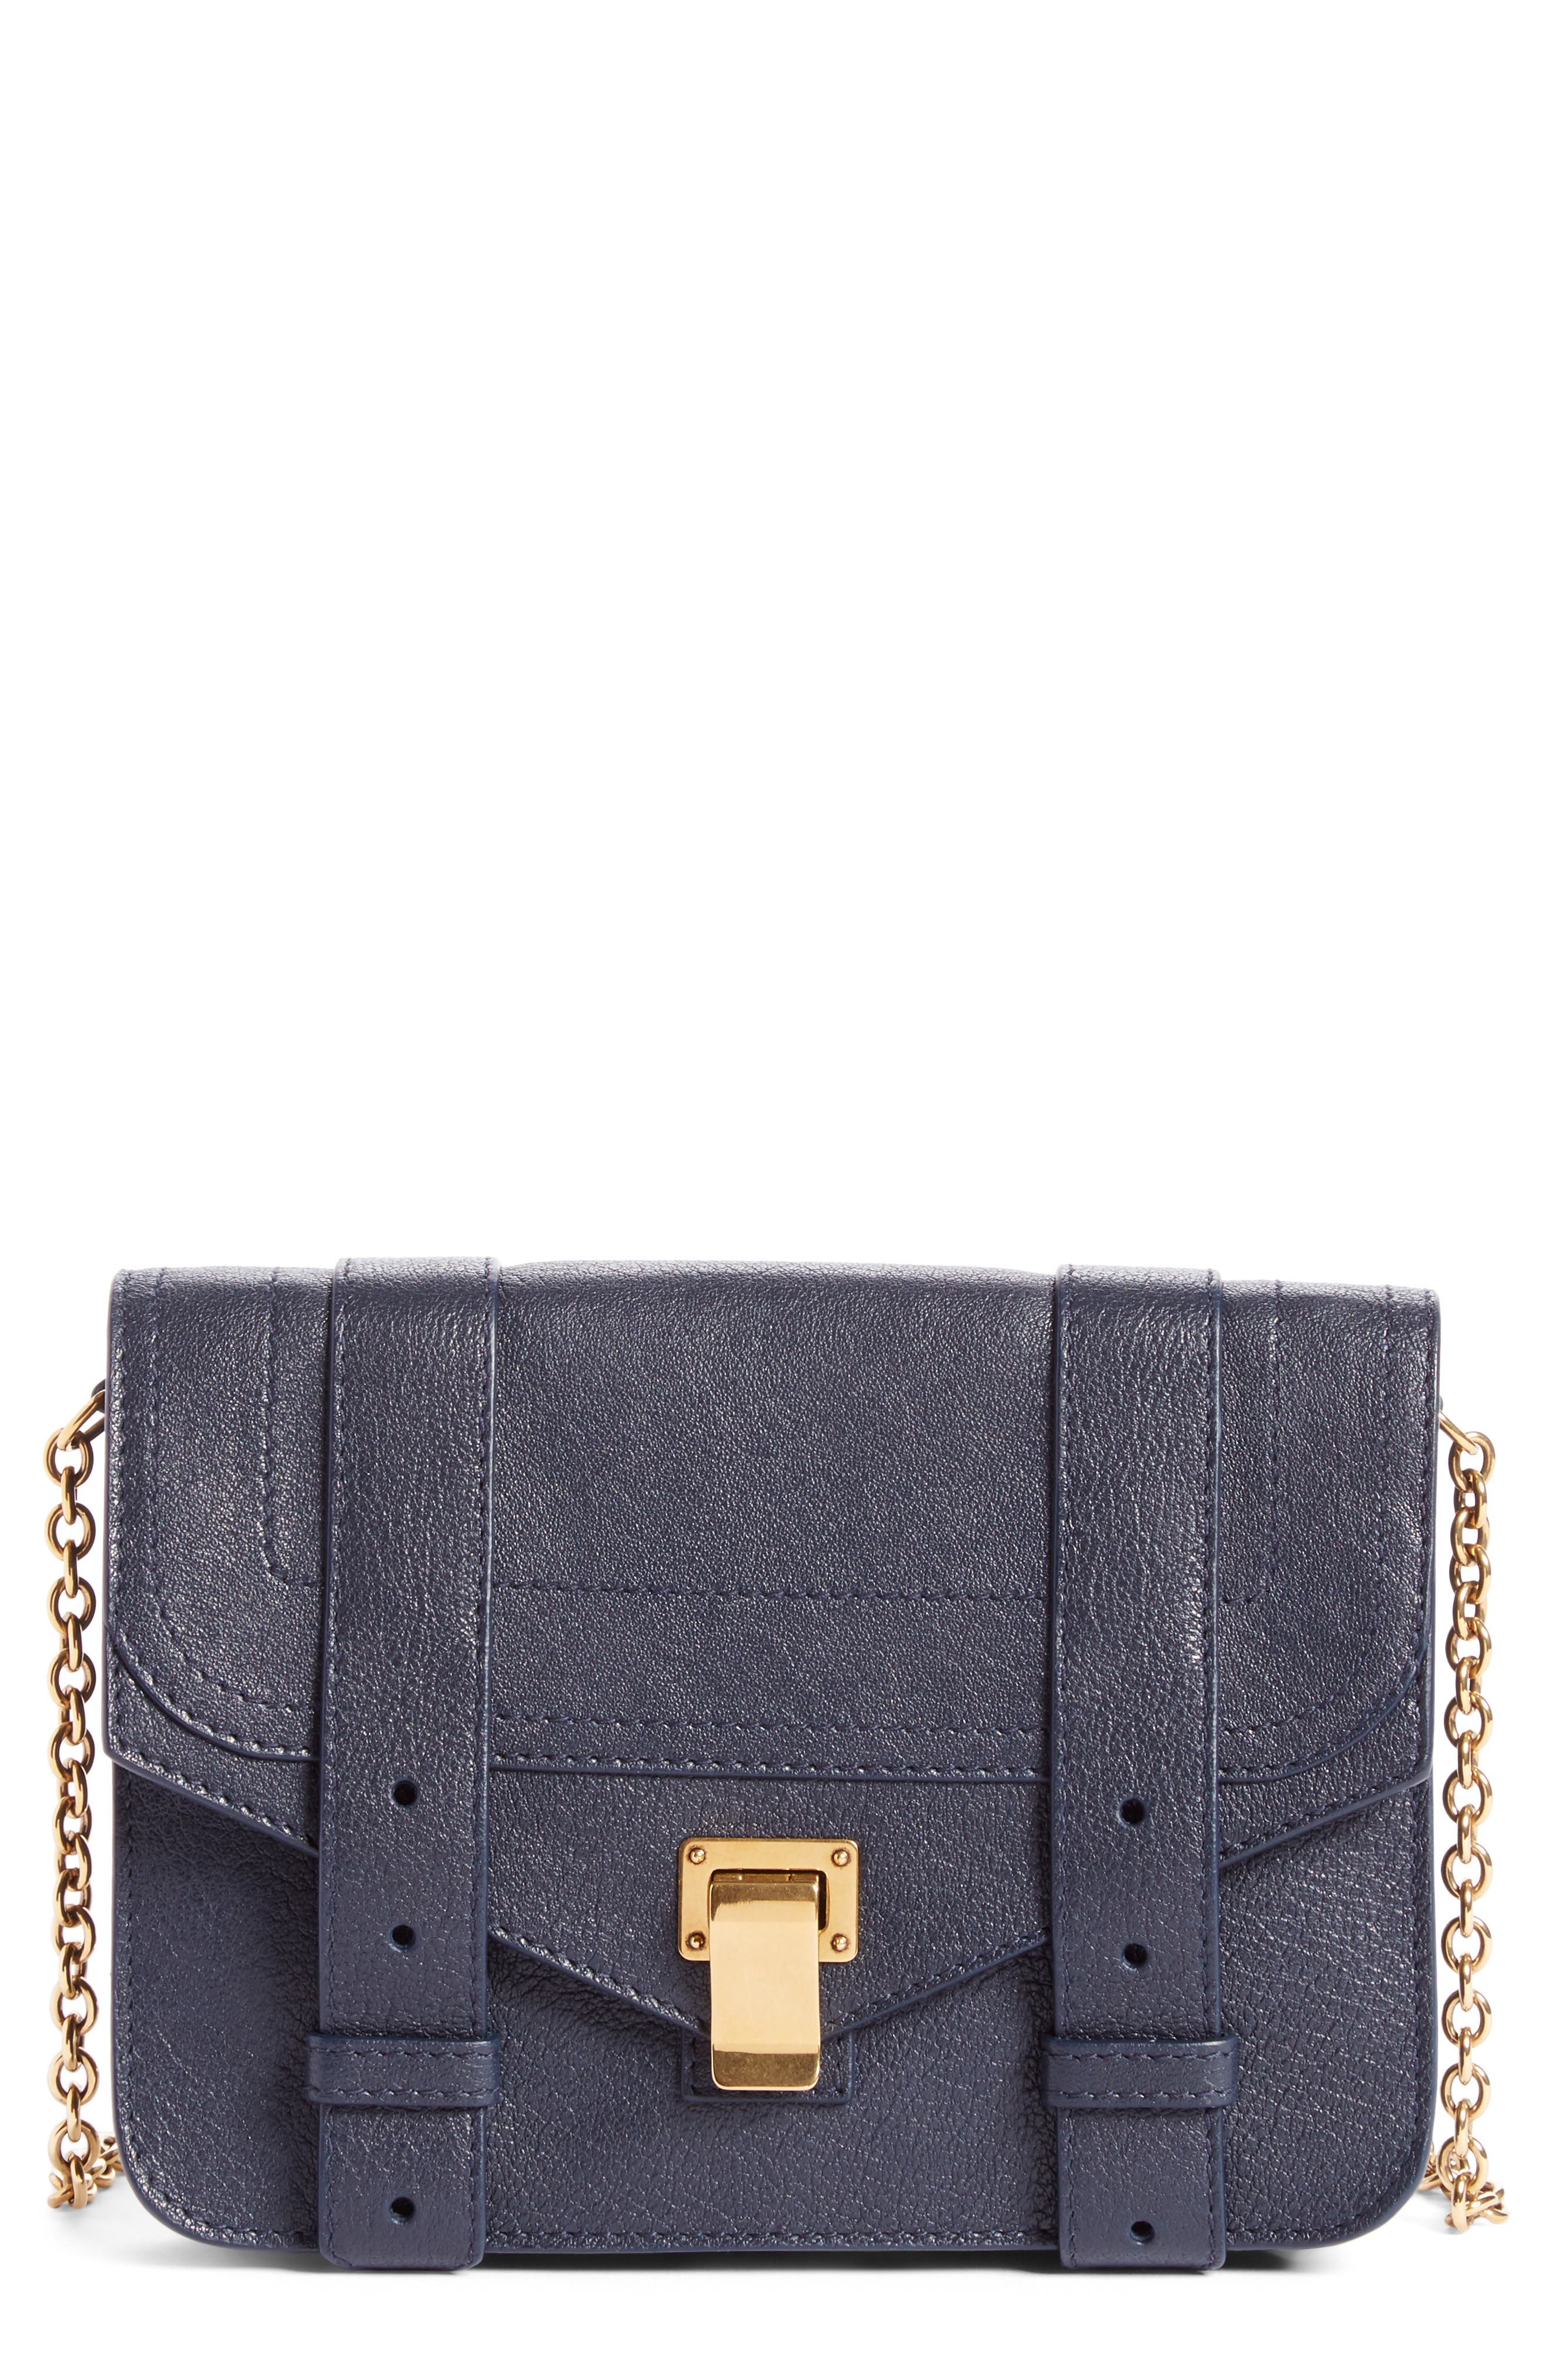 PS1 Lambskin Leather Chain Wallet,                         Main,                         color, Midnight